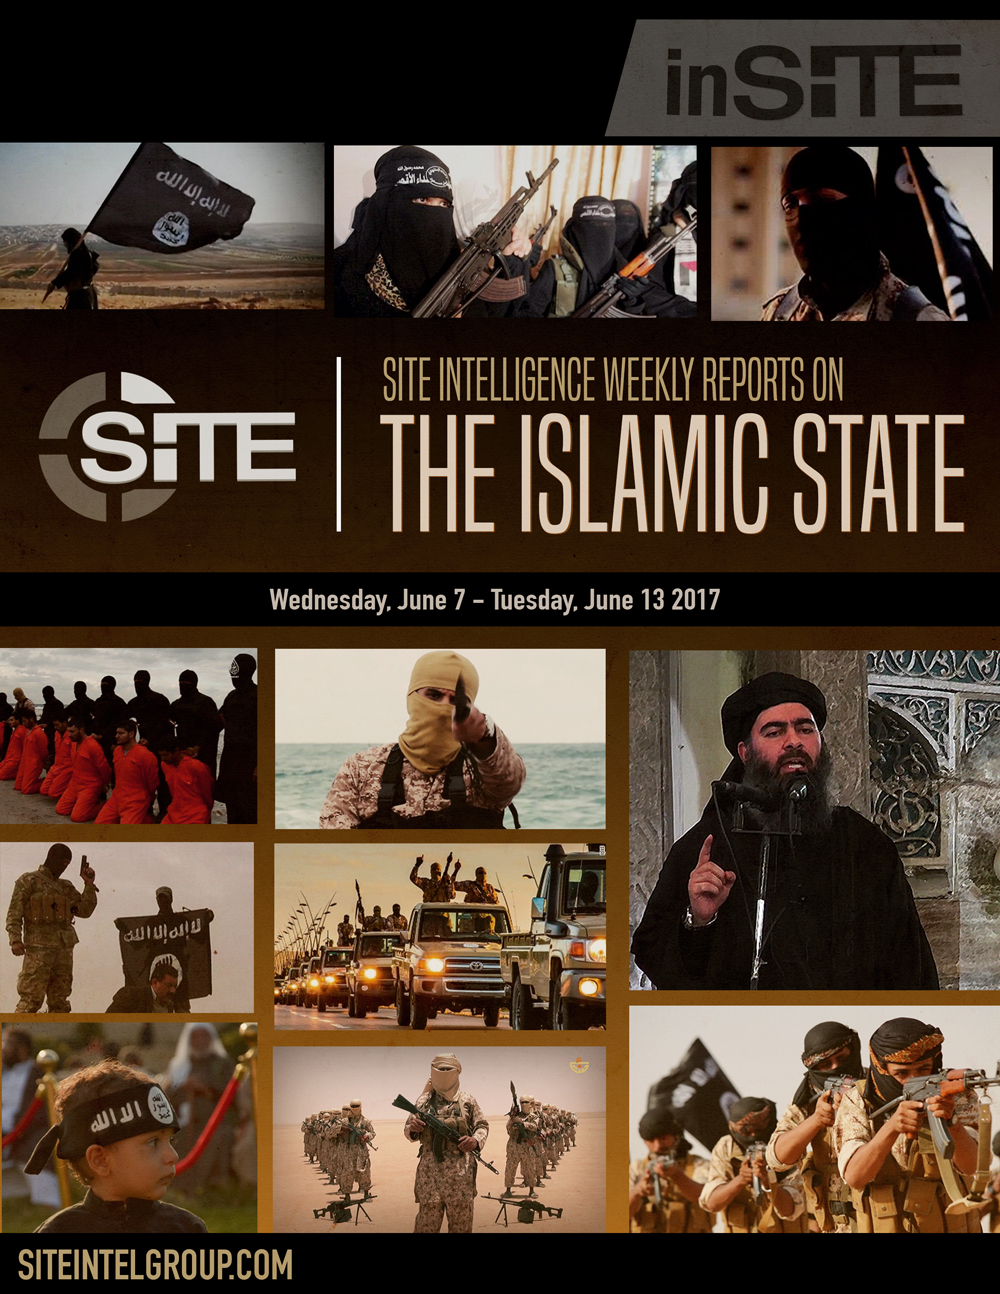 Weekly inSITE on the Islamic State, July 19 - 25, 2017